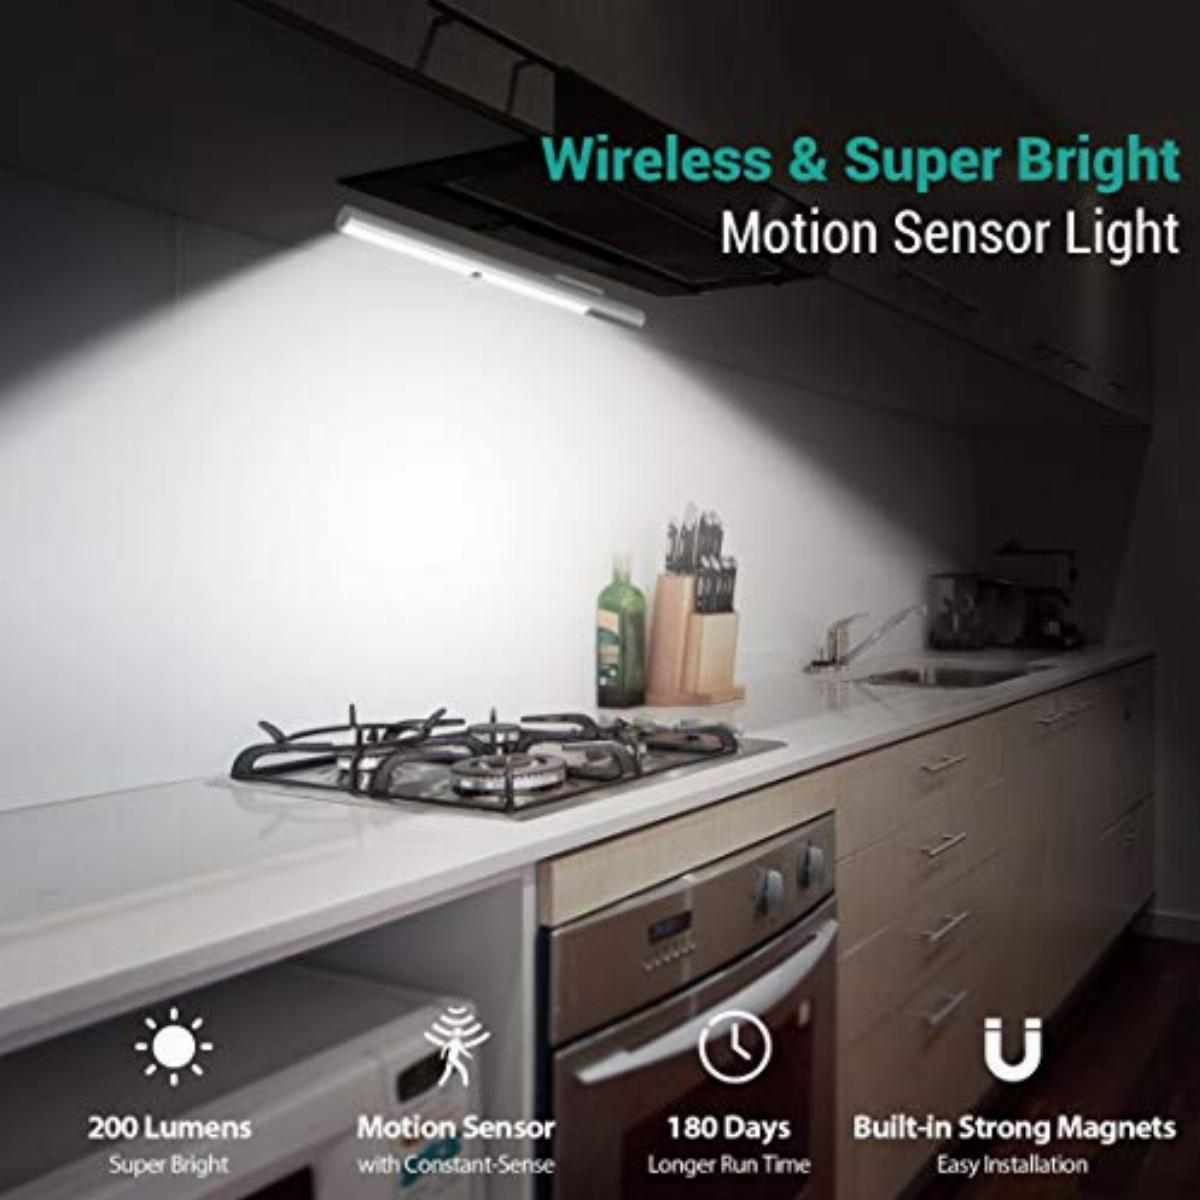 bls led closet light battery powered t401 super bright wireless under cabinet lighting motion sensor light 4000mah rechargeable battery operated